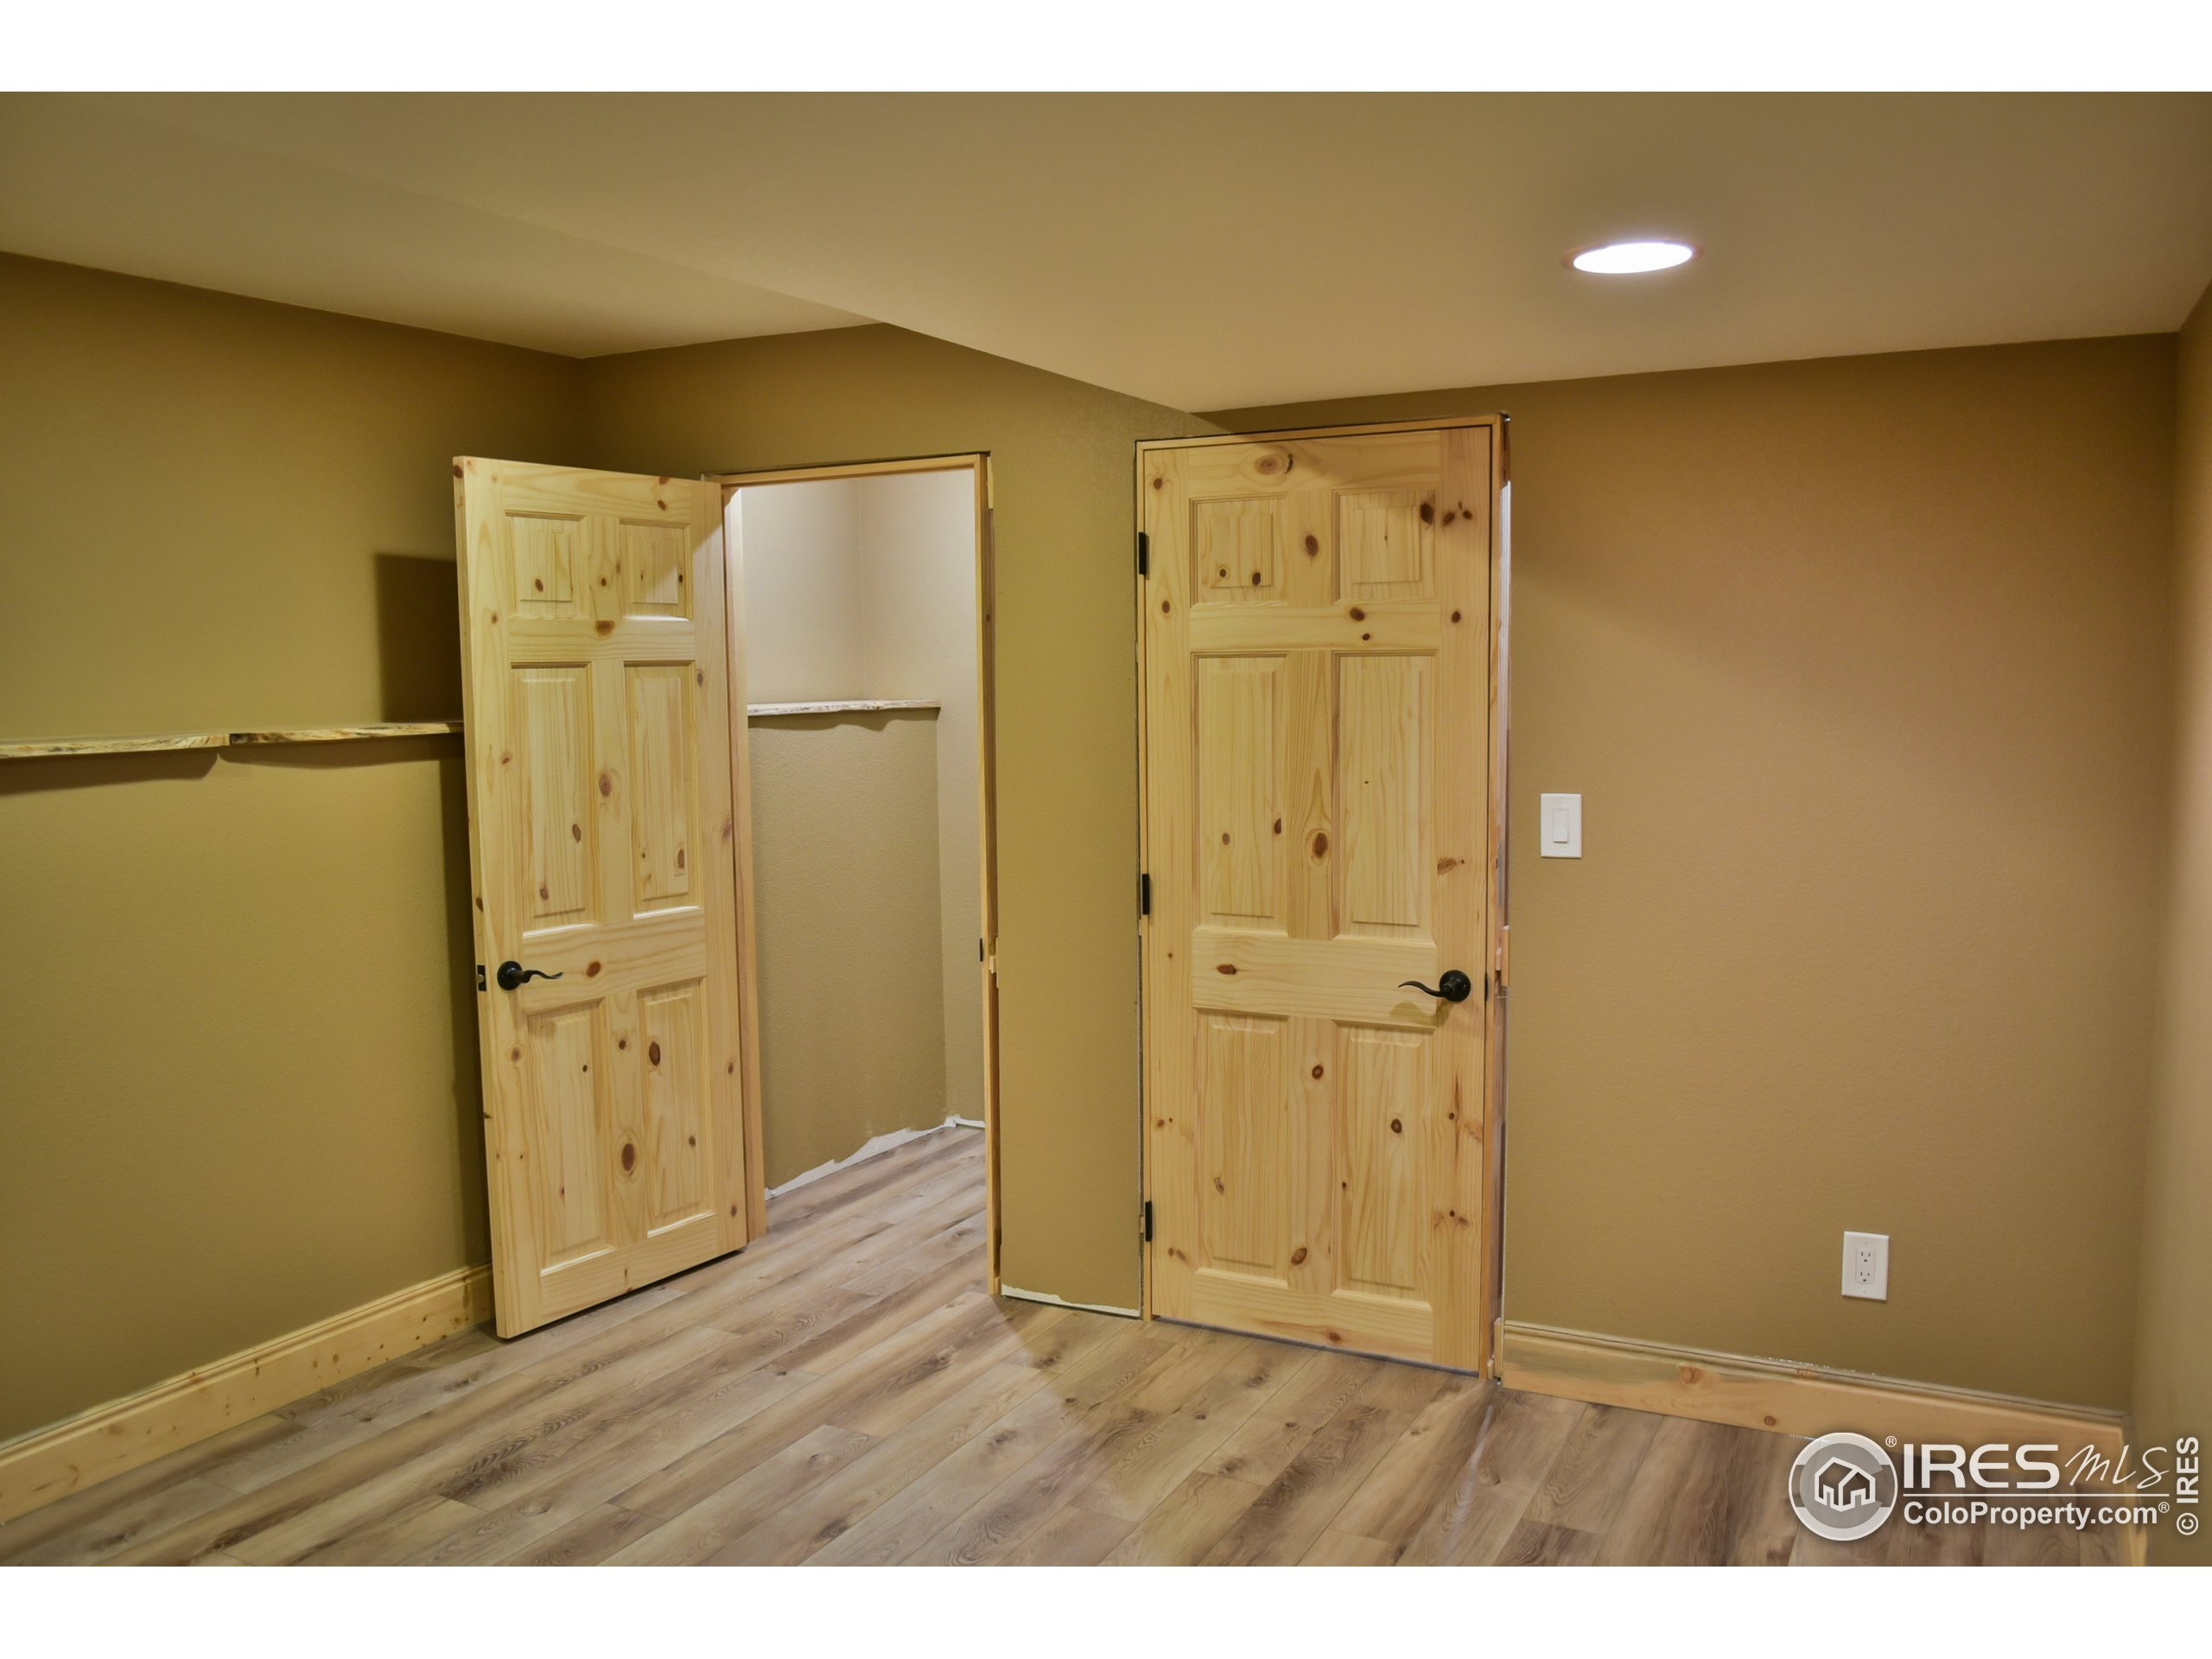 2nd of 2 storage room/study/offices in the basement.